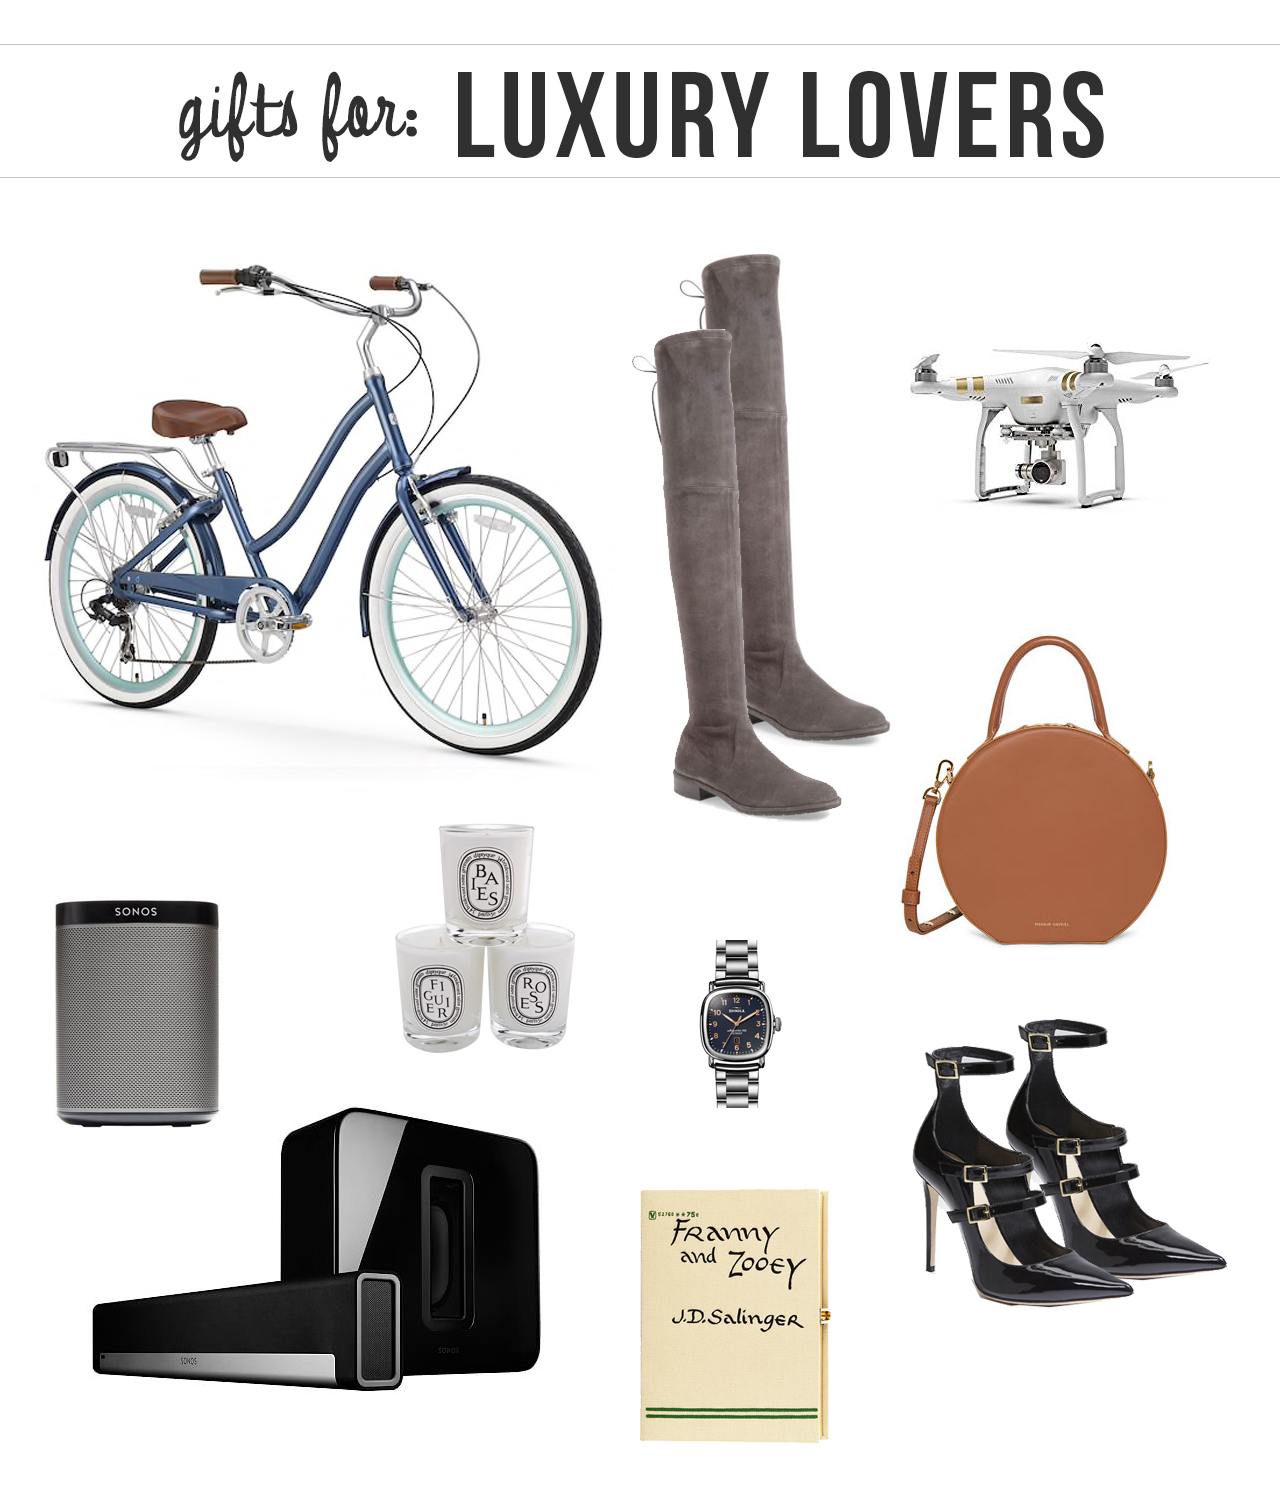 The Steele Maiden: 100 Best Holiday Gift Ideas